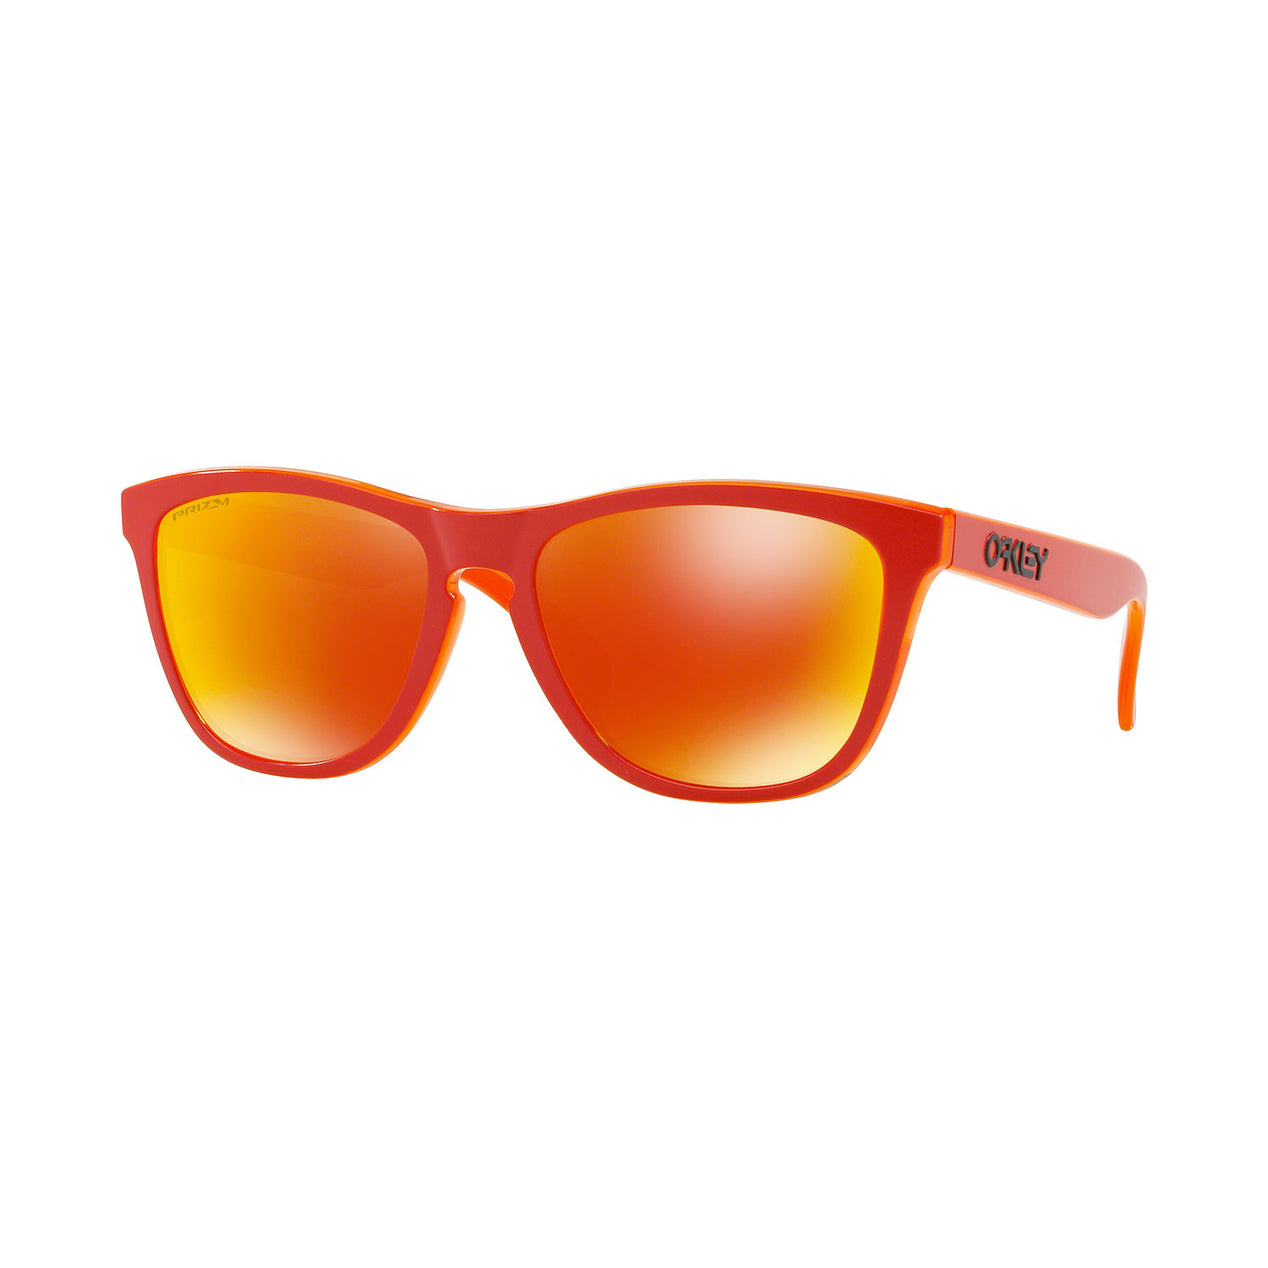 b4d5a32f21 Oakley Frogskins Grips - Matte Red Translucent Orange - Prizm Ruby Iridium  Lens Sunglasses